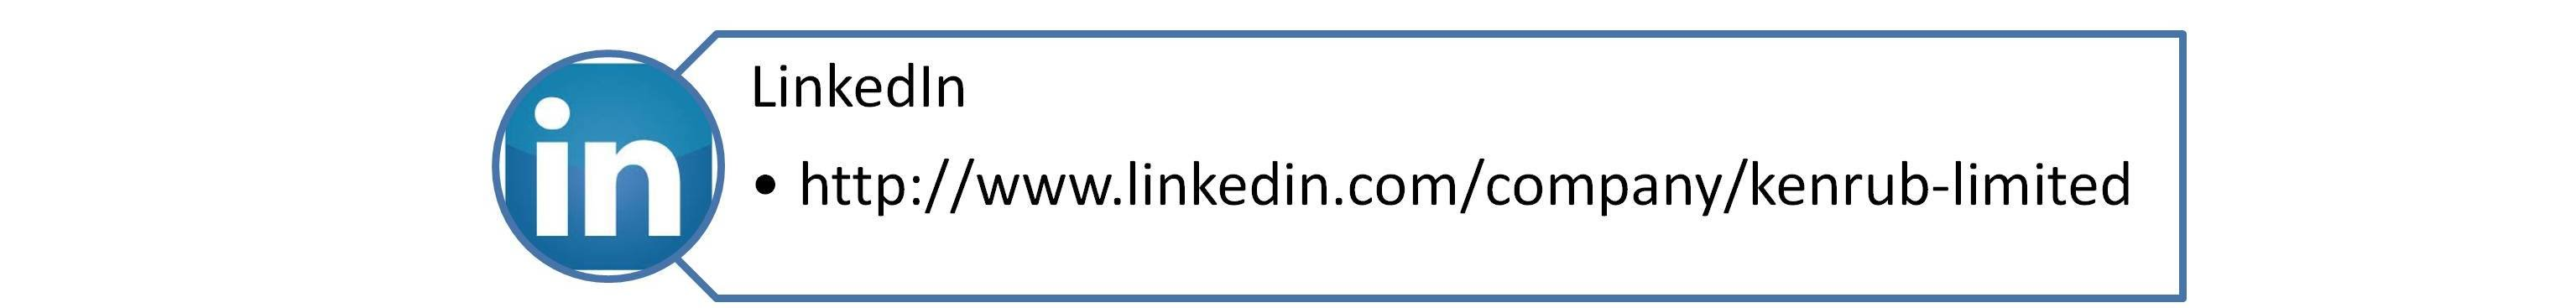 https://www.linkedin.com/company/kenrub-limited